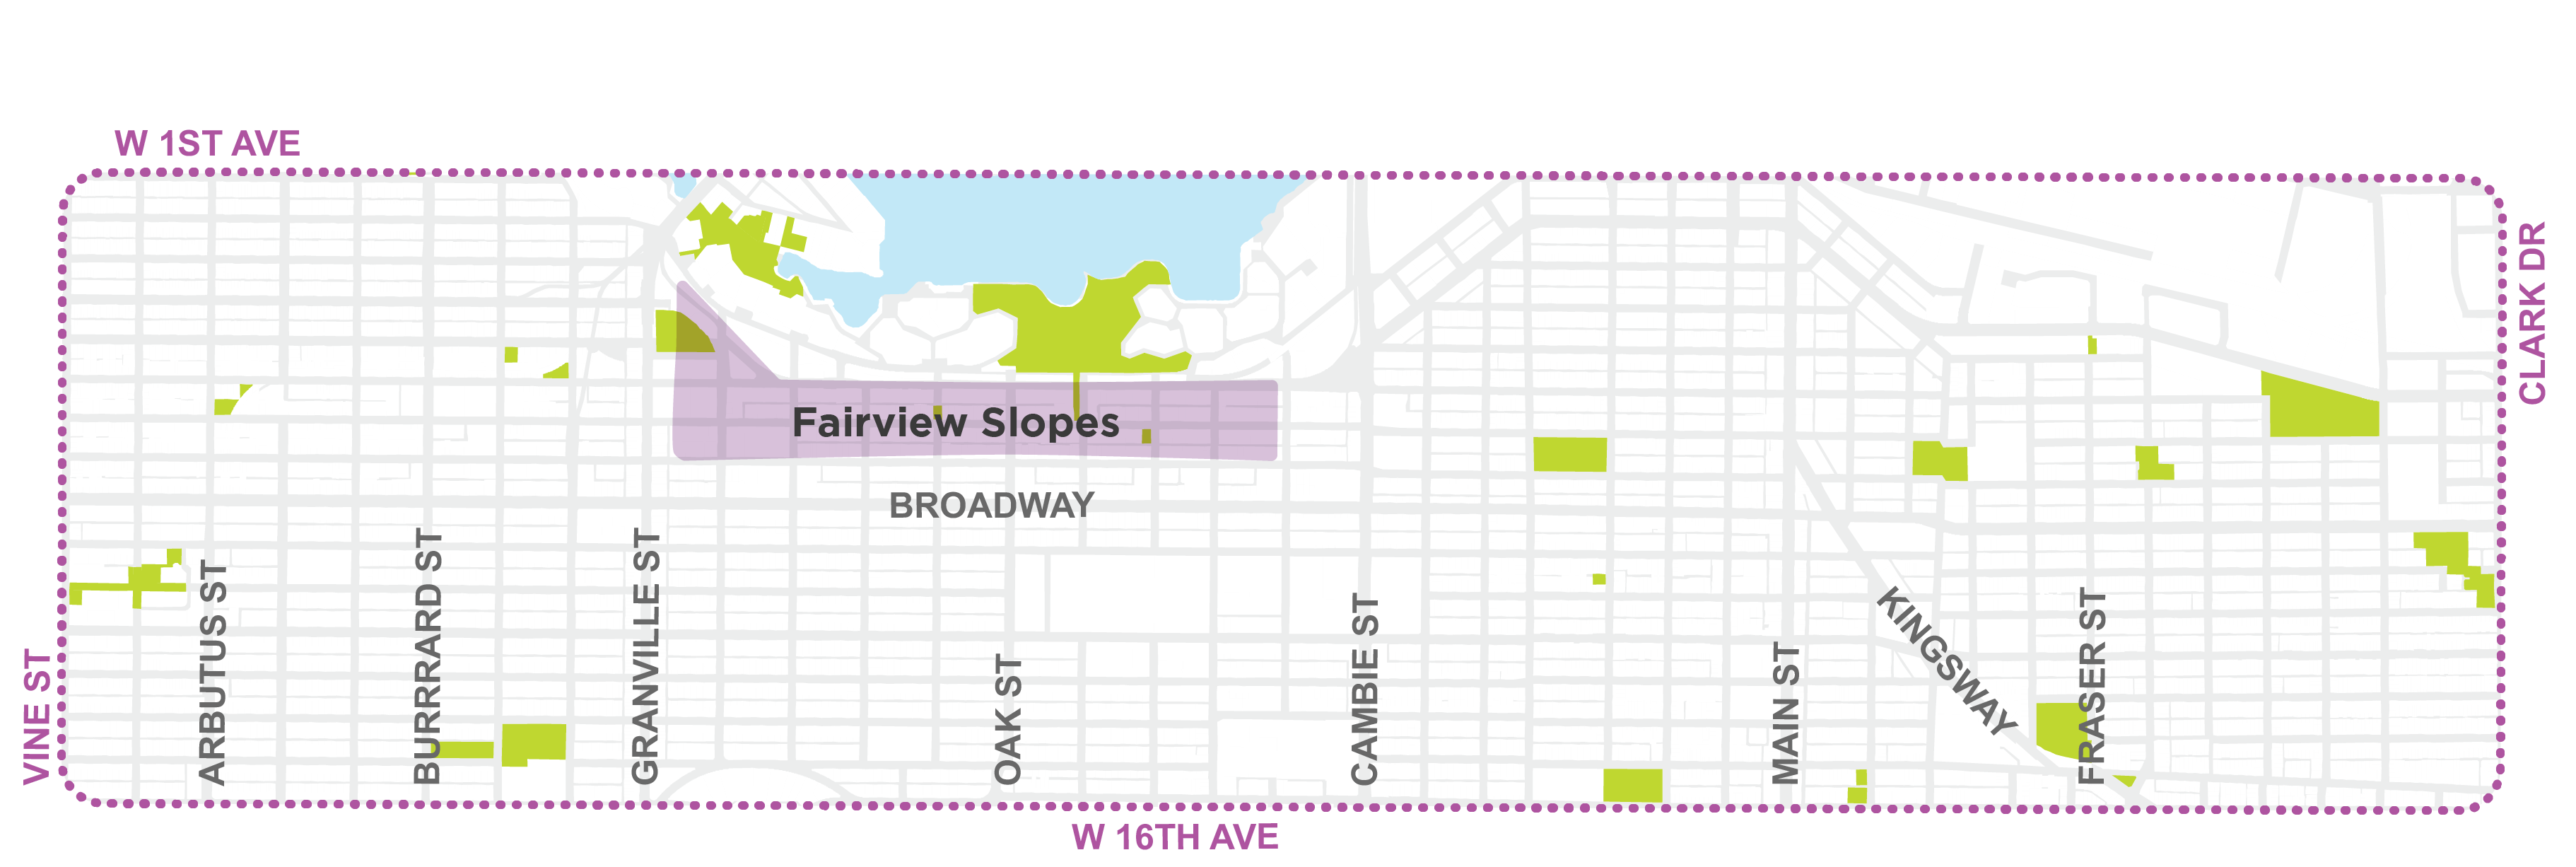 Fairview Slopes Map